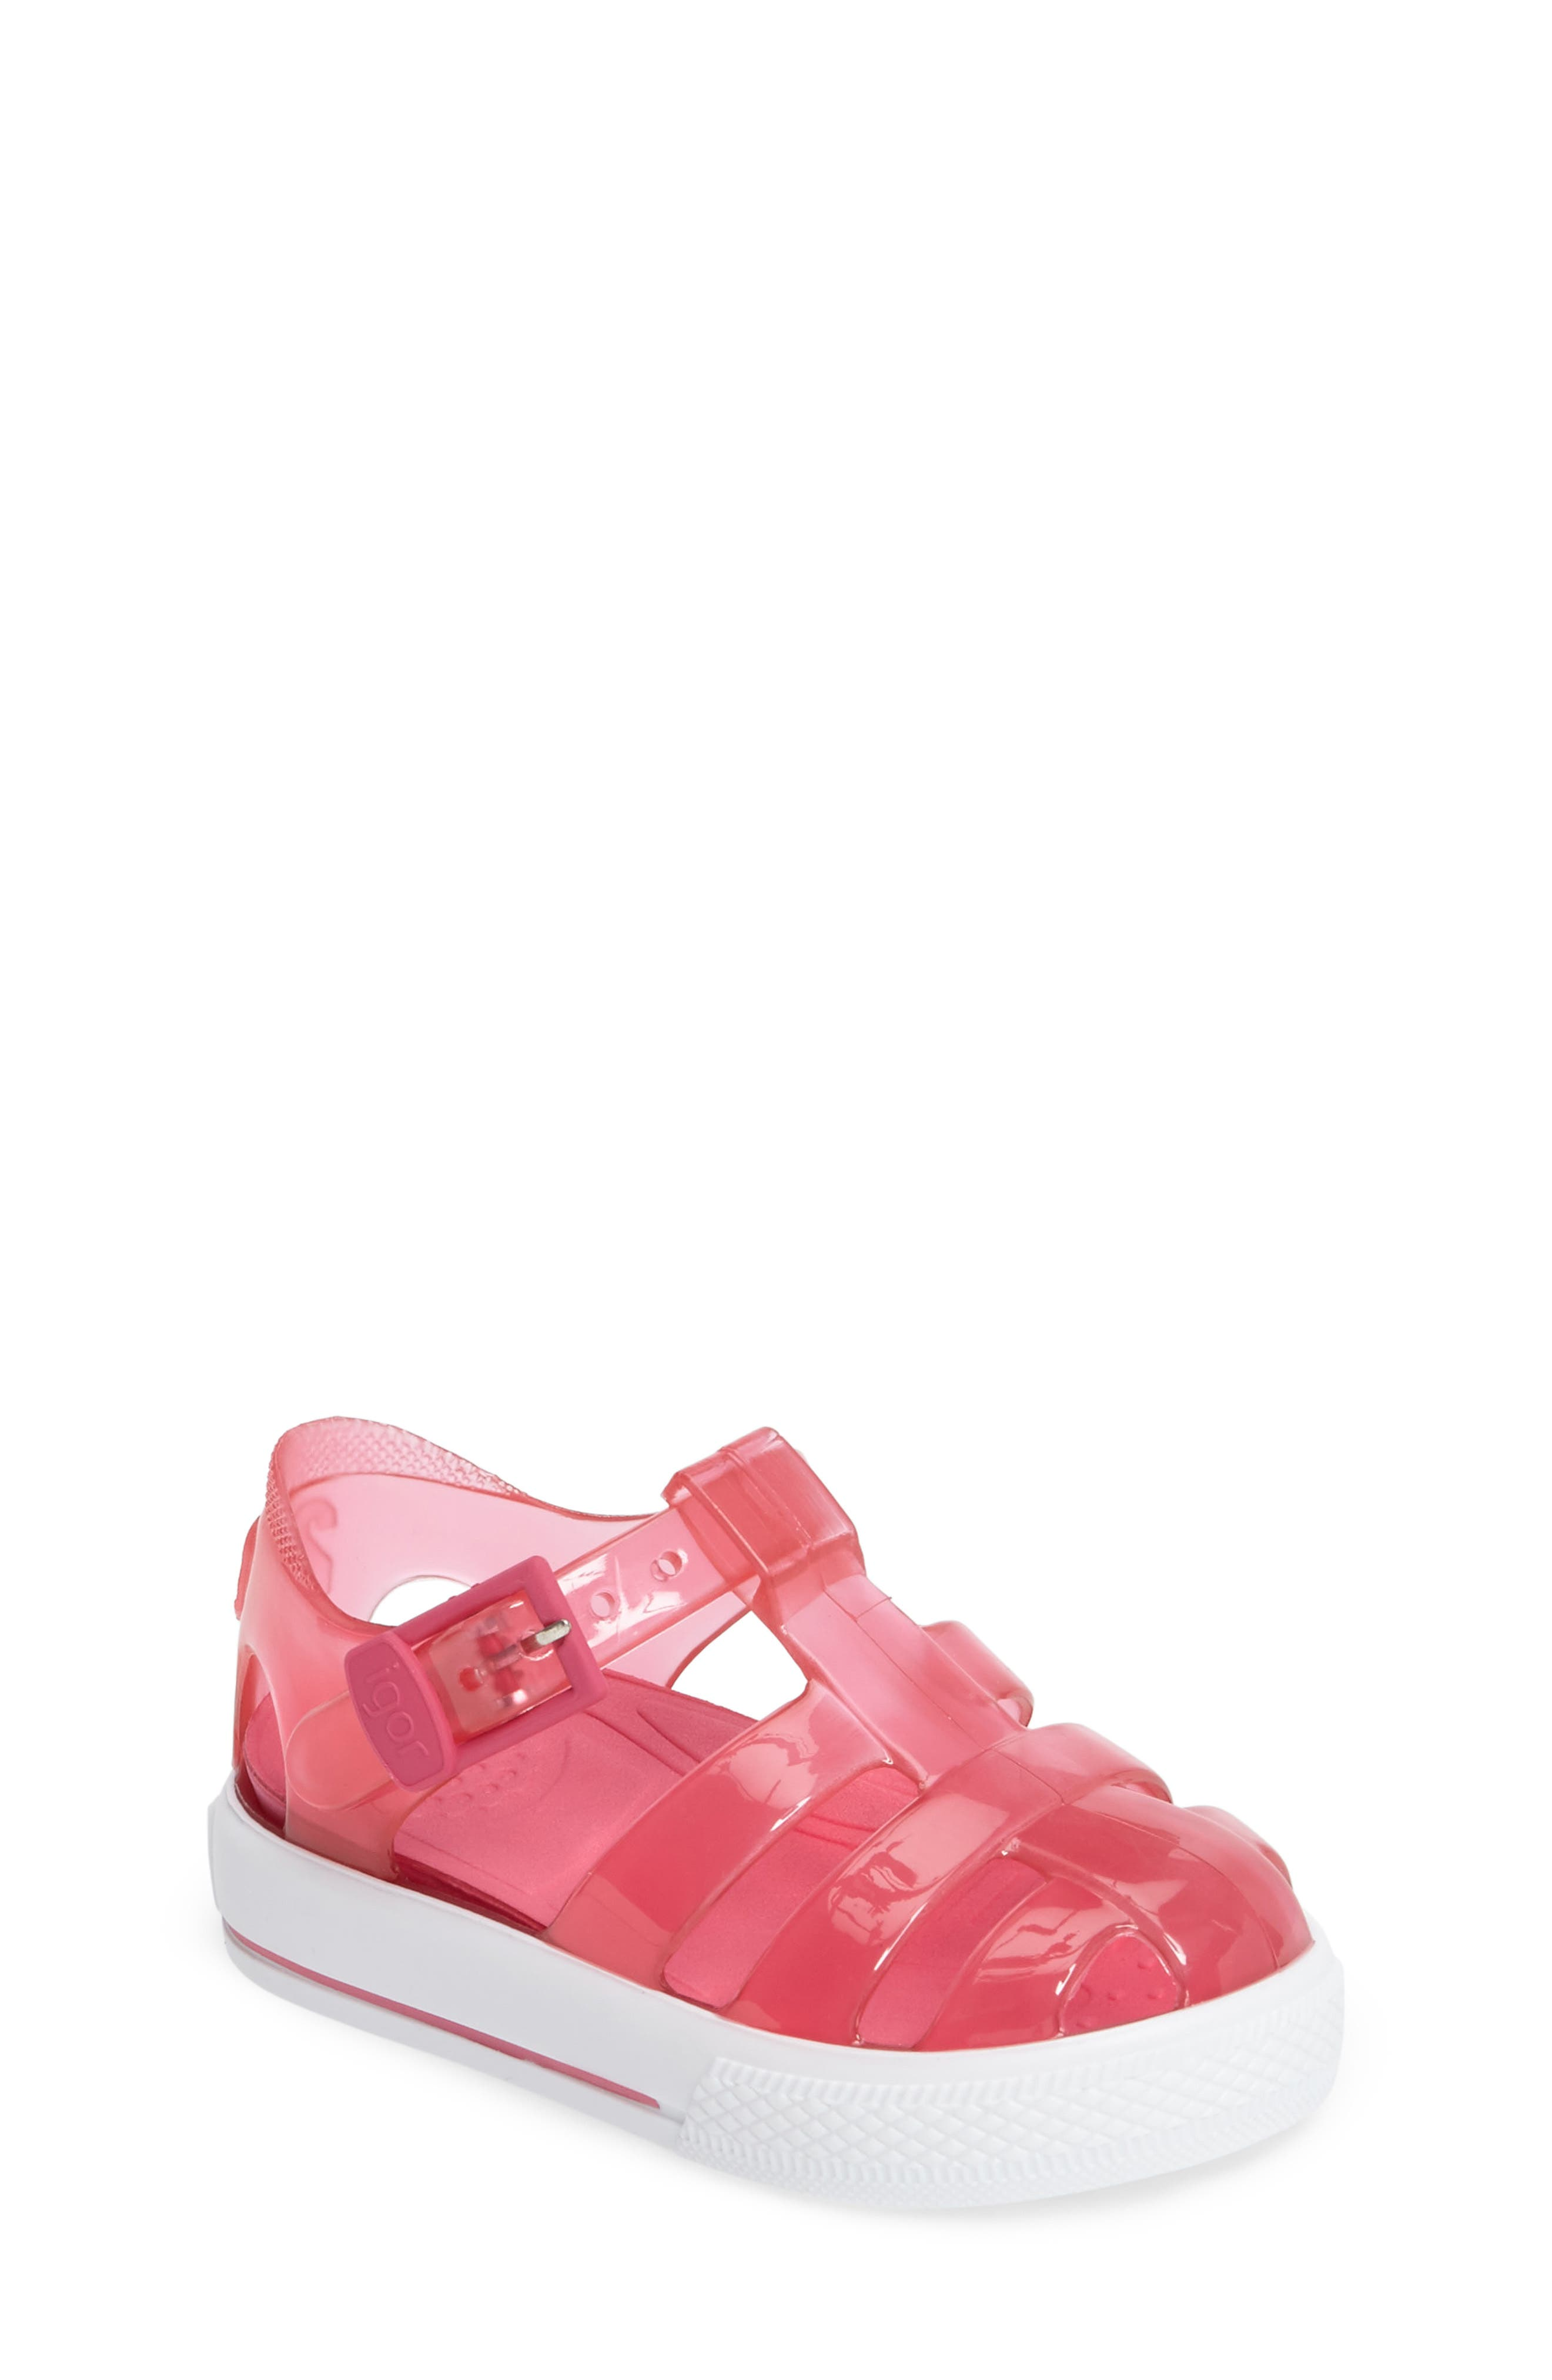 Igor Tenis Fisherman Jelly Sandal (Walker & Toddler)